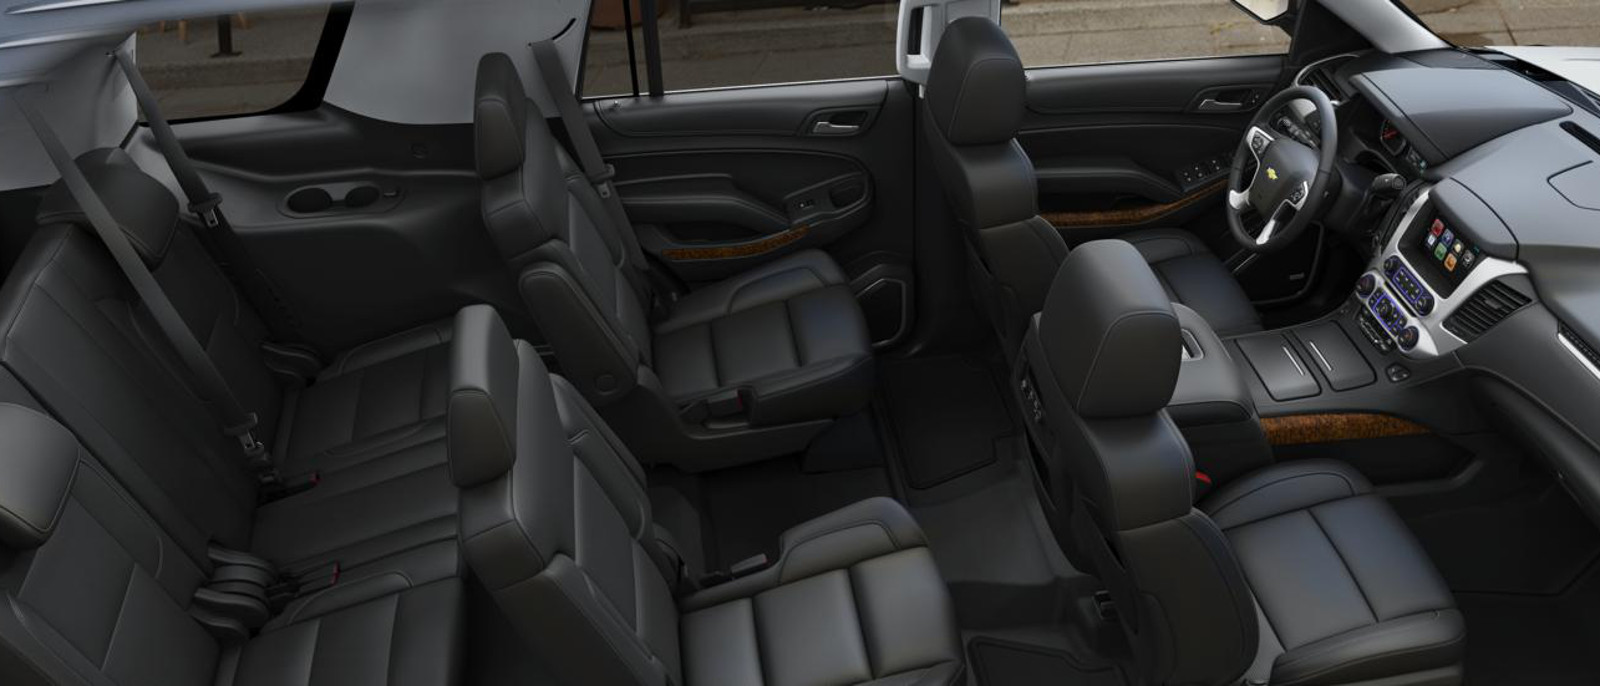 tahoe 9 passenger seating. Black Bedroom Furniture Sets. Home Design Ideas